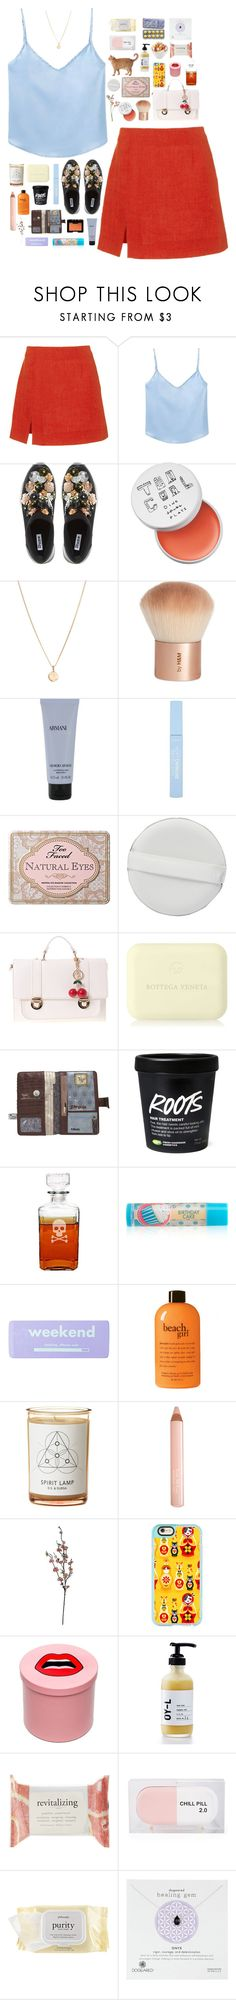 """i'll meet you in the middle"" by dill-a ❤ liked on Polyvore featuring Isa Arfen, Dune, too cool for school, Laura Lee, H&M, Giorgio Armani, Too Faced Cosmetics, NARS Cosmetics, Guide London and Bottega Veneta"